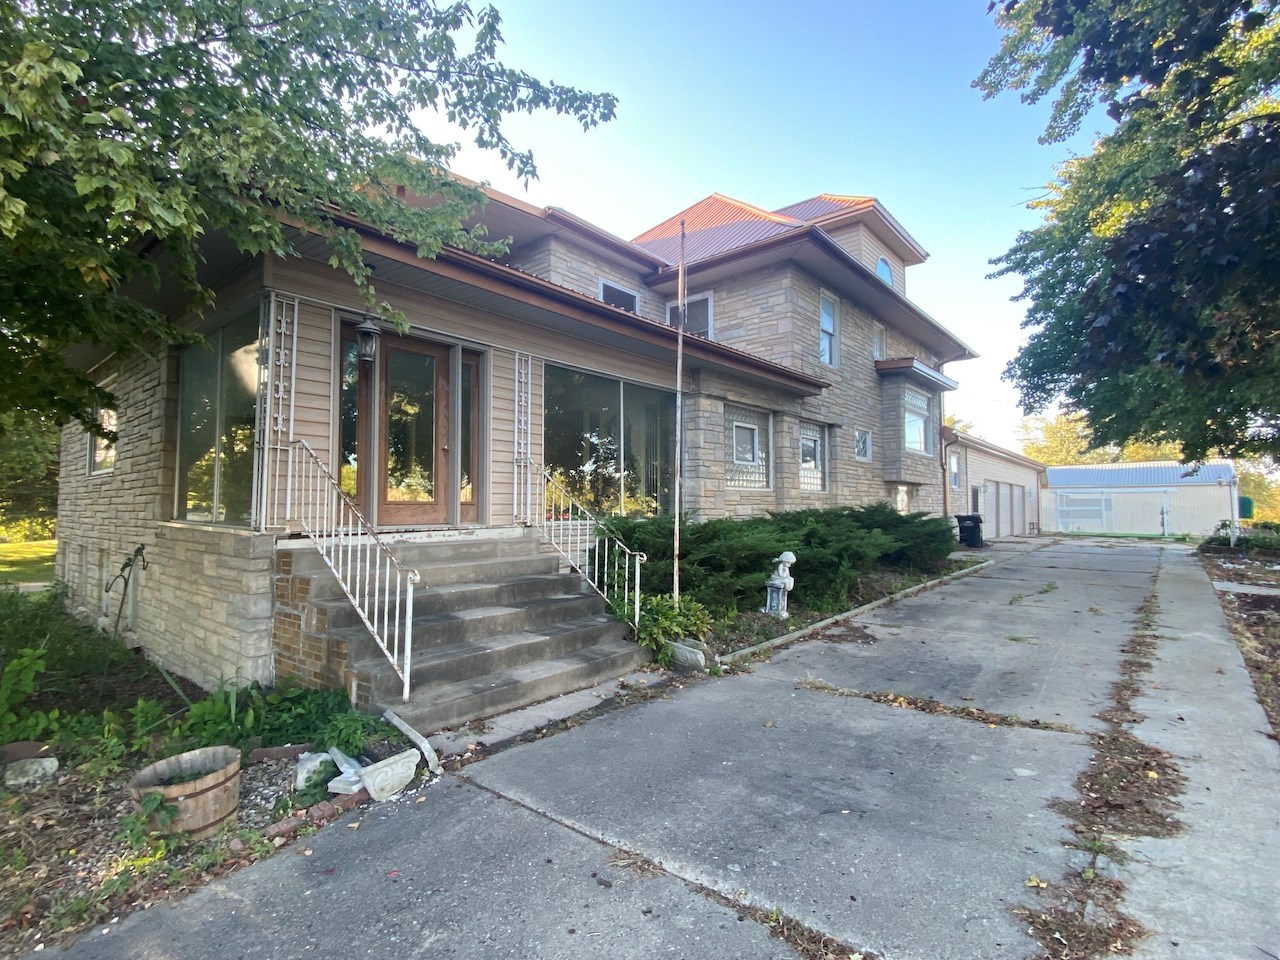 Historic Victorian Home For Sale with Income Potential